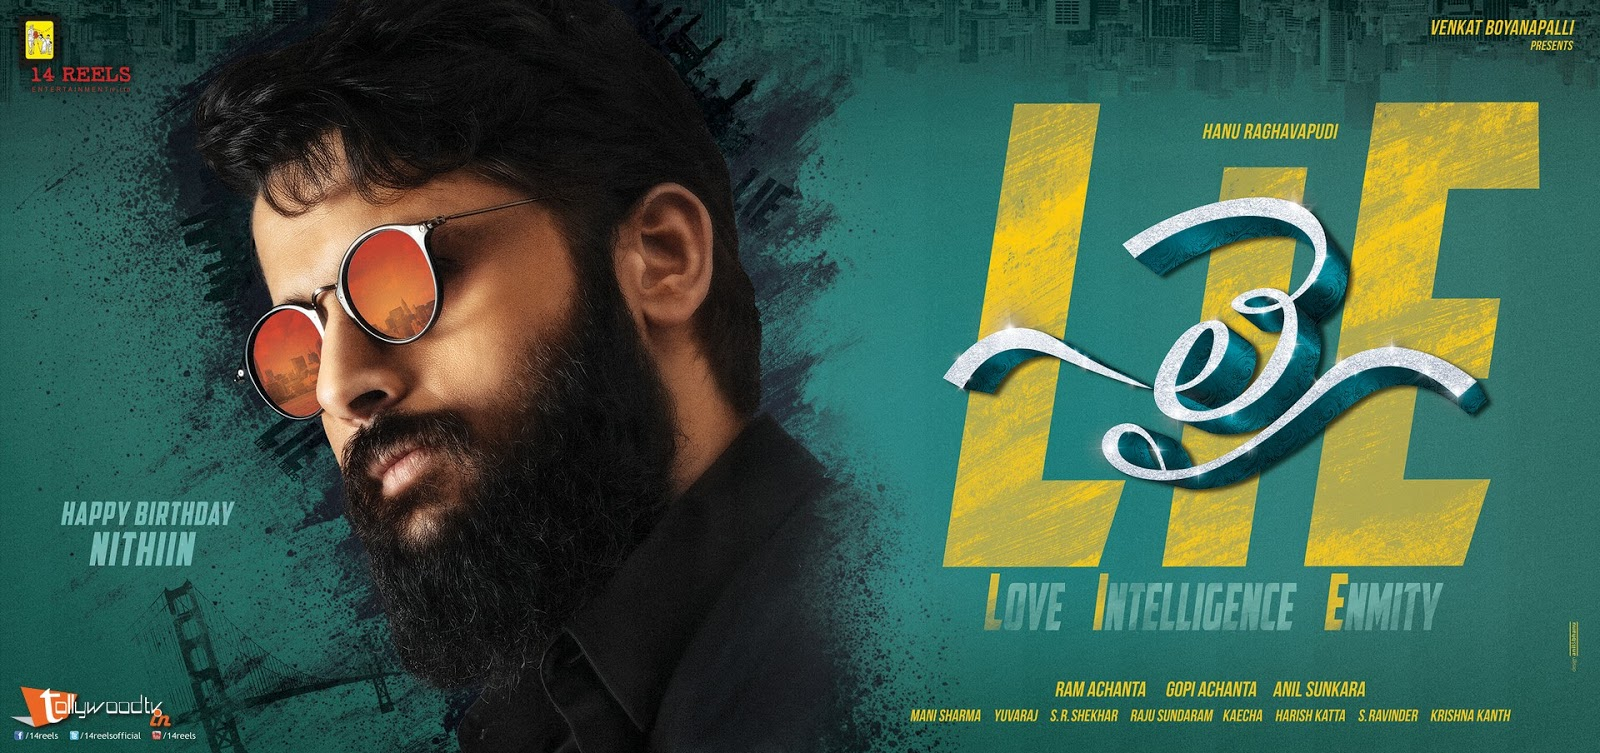 Lie First Look Posters-HQ-Photo-2